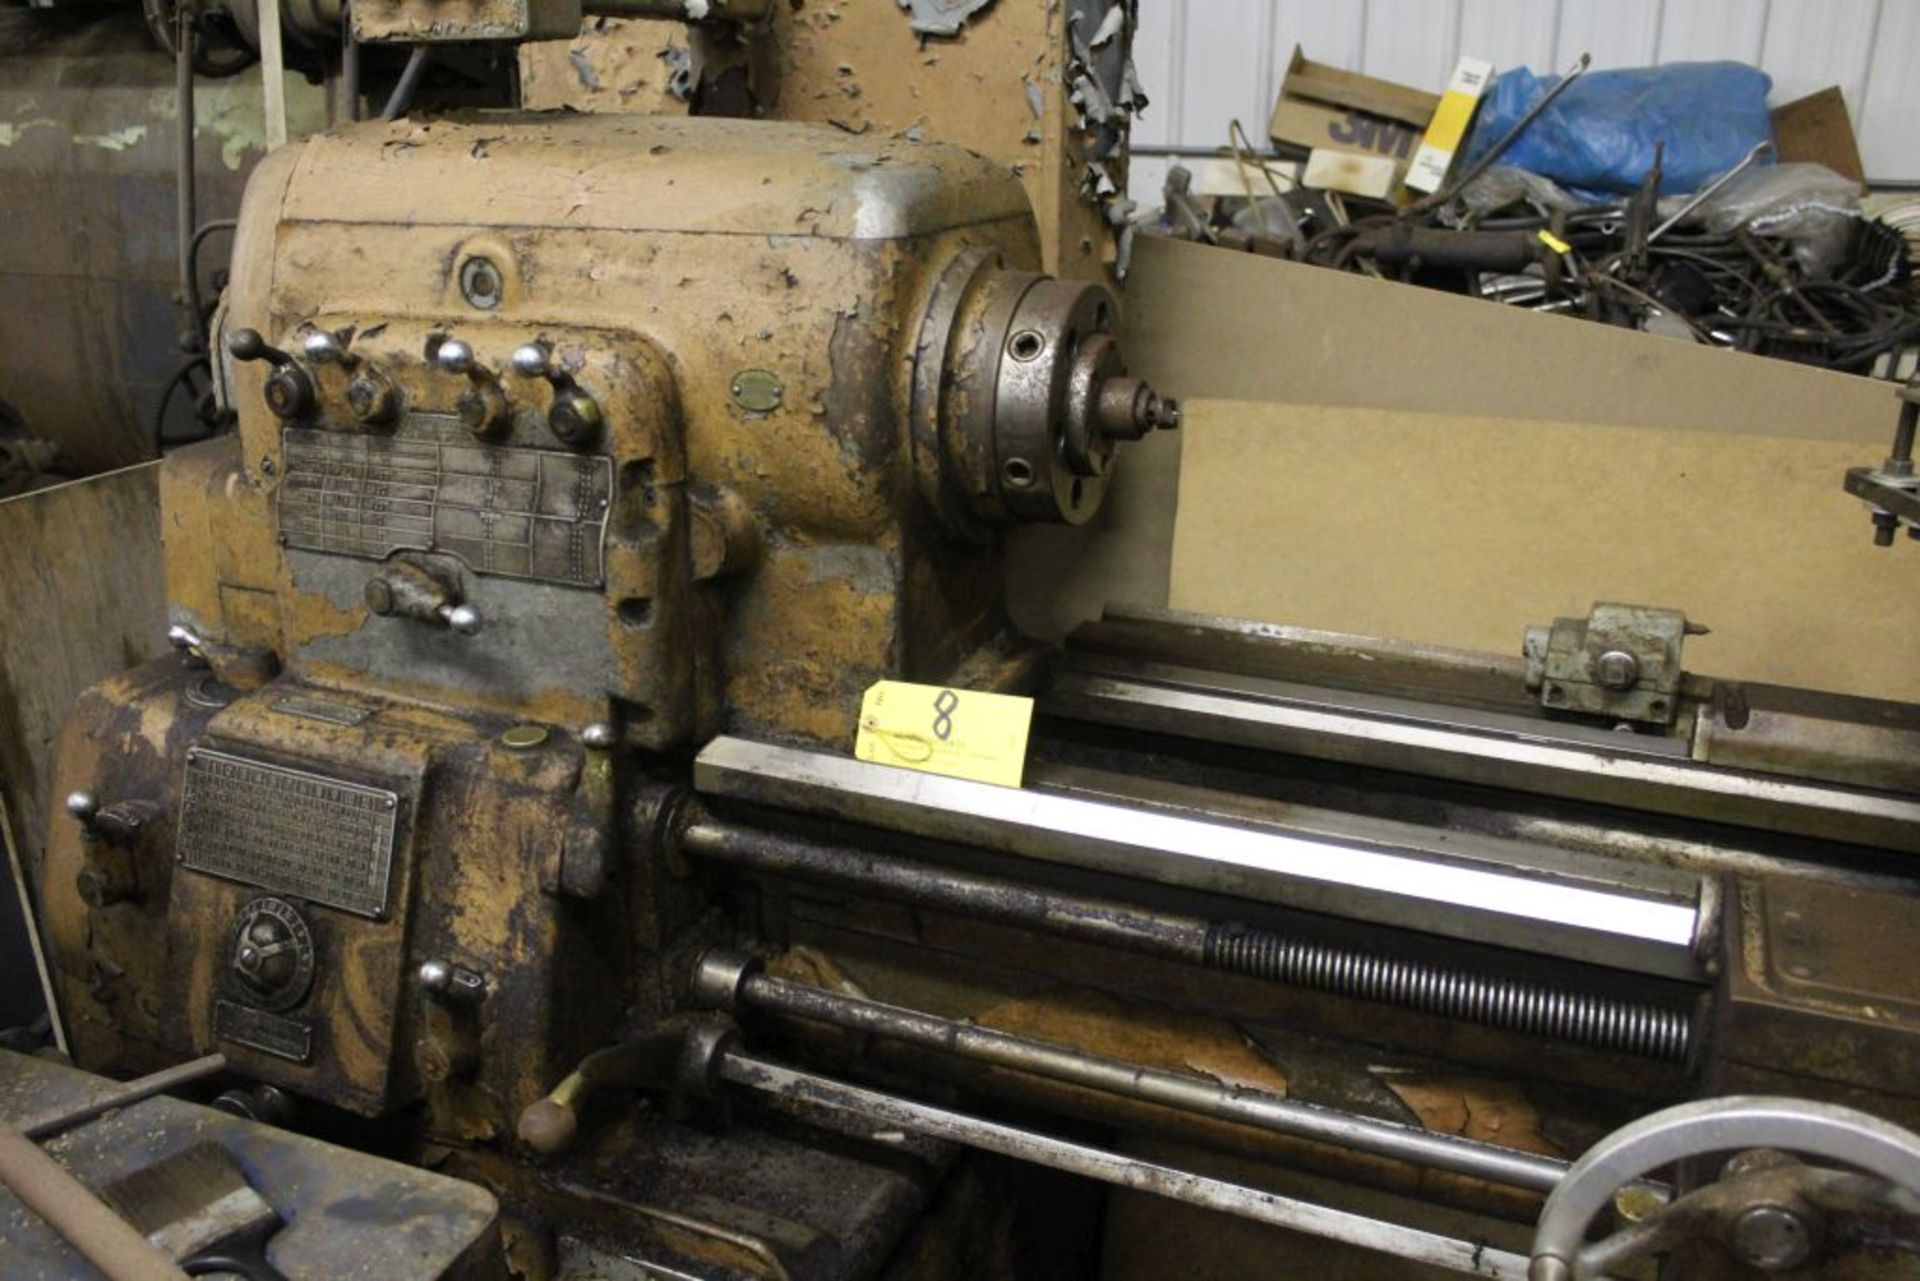 """1960 Monarch engine lathe, model 61, sn 44310-AT, 13 x 54, 20 1/2"""" swing, 79"""" bed, 55"""" center to - Image 2 of 8"""